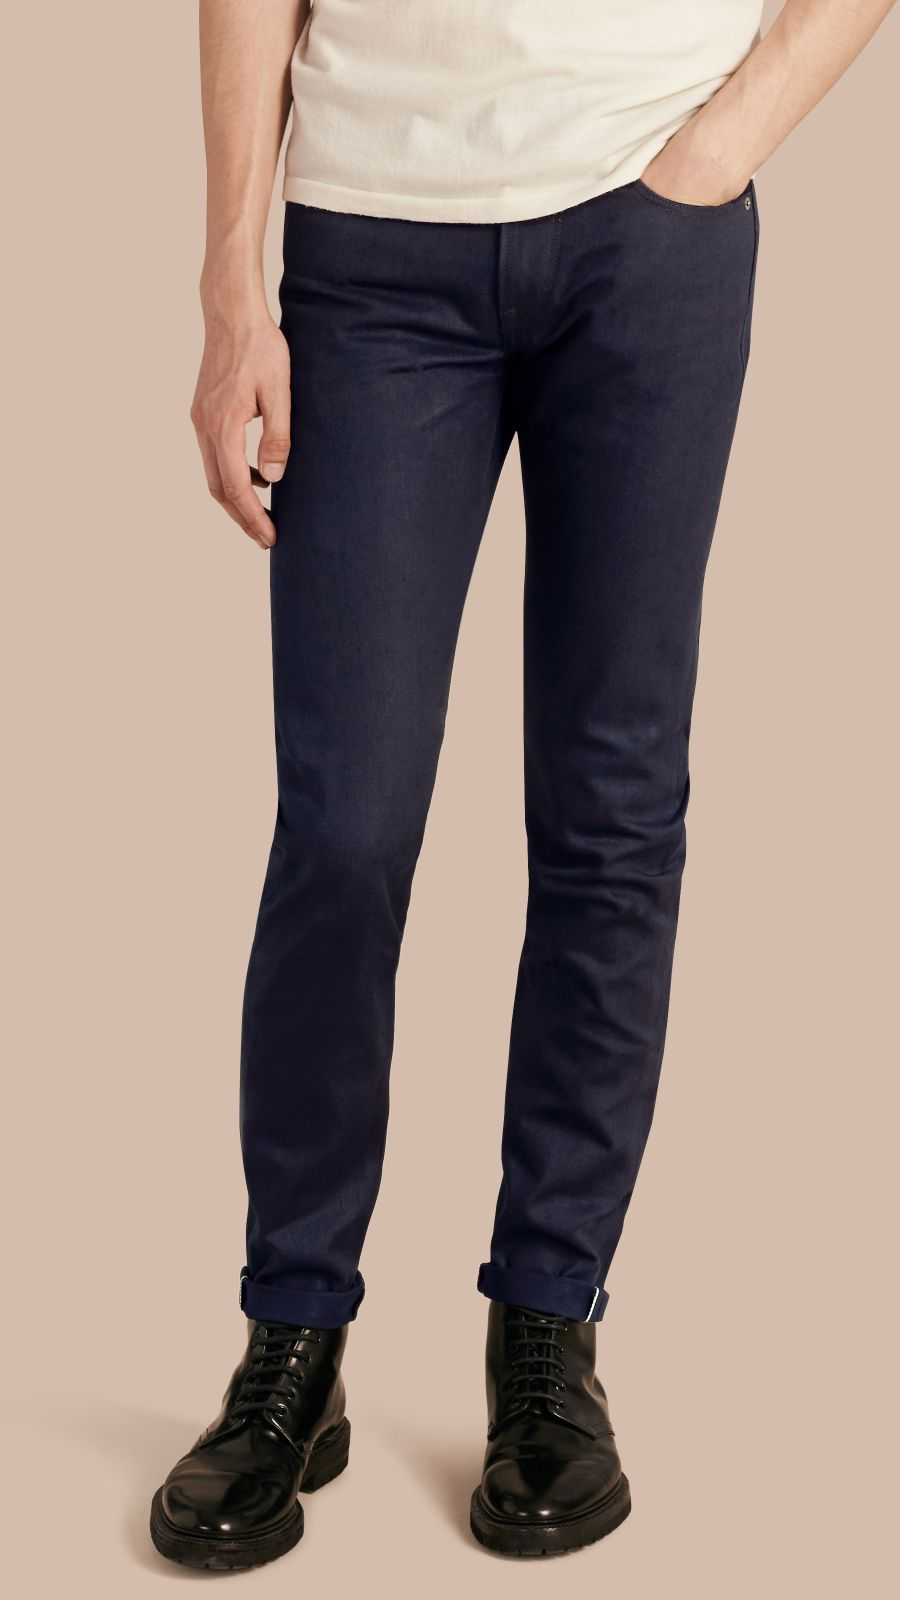 Dark indigo Slim Fit Saturated Selvedge Jeans - Image 1